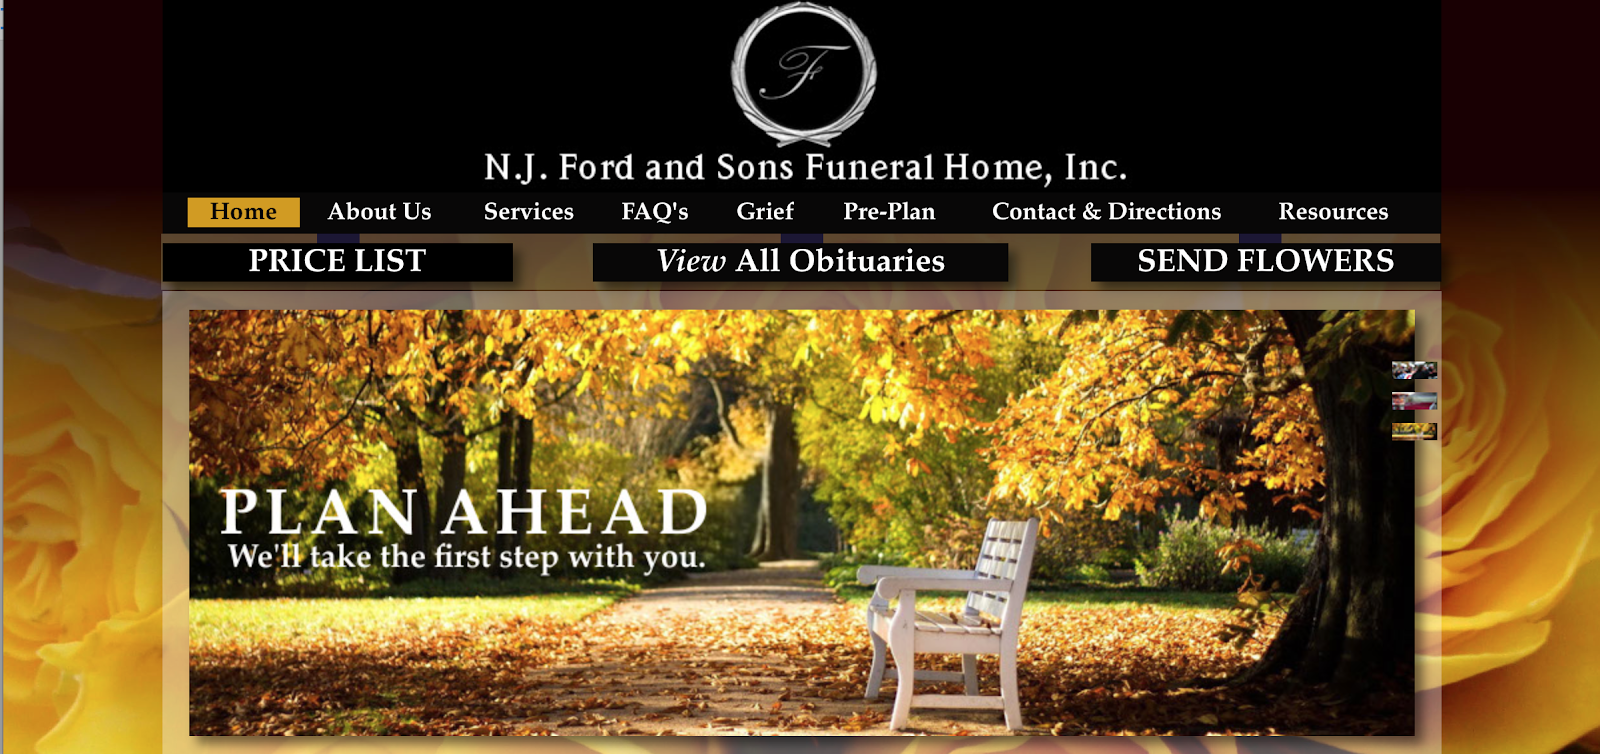 N.J Ford and Sons Funeral Home